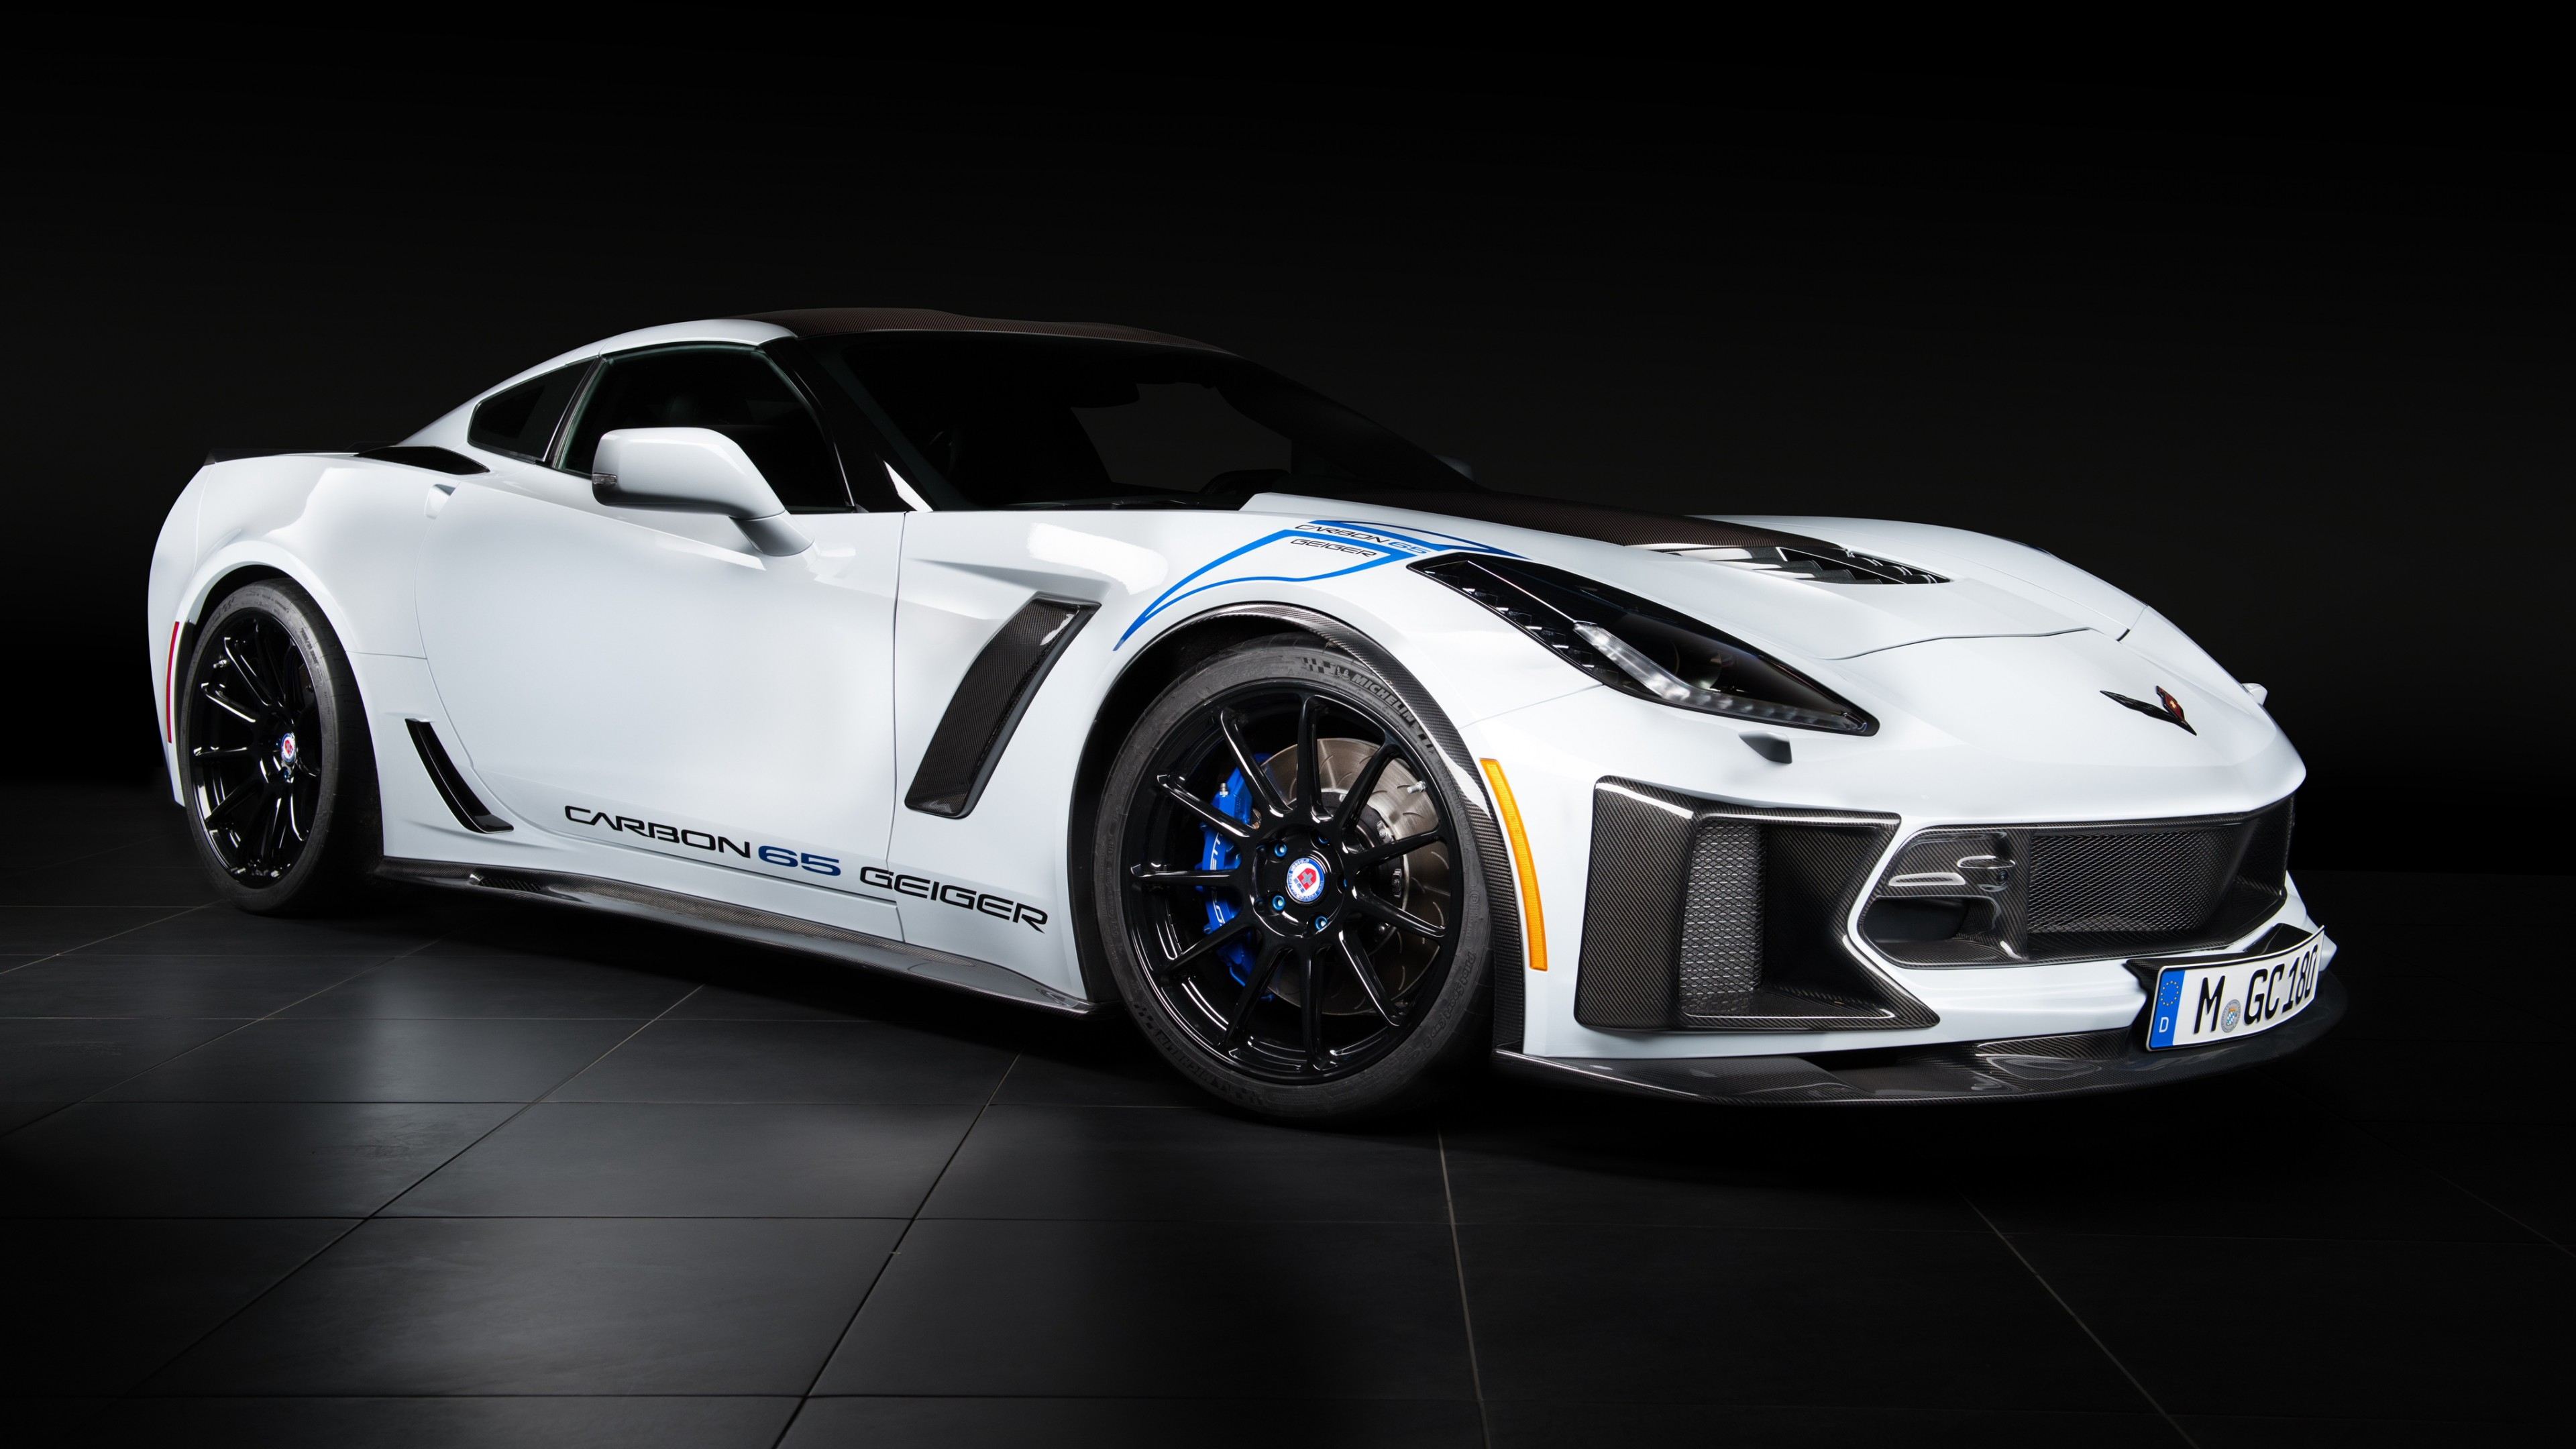 2018 Geiger Chevrolet Corvette Z06 Carbon 65 Edition 4k 2